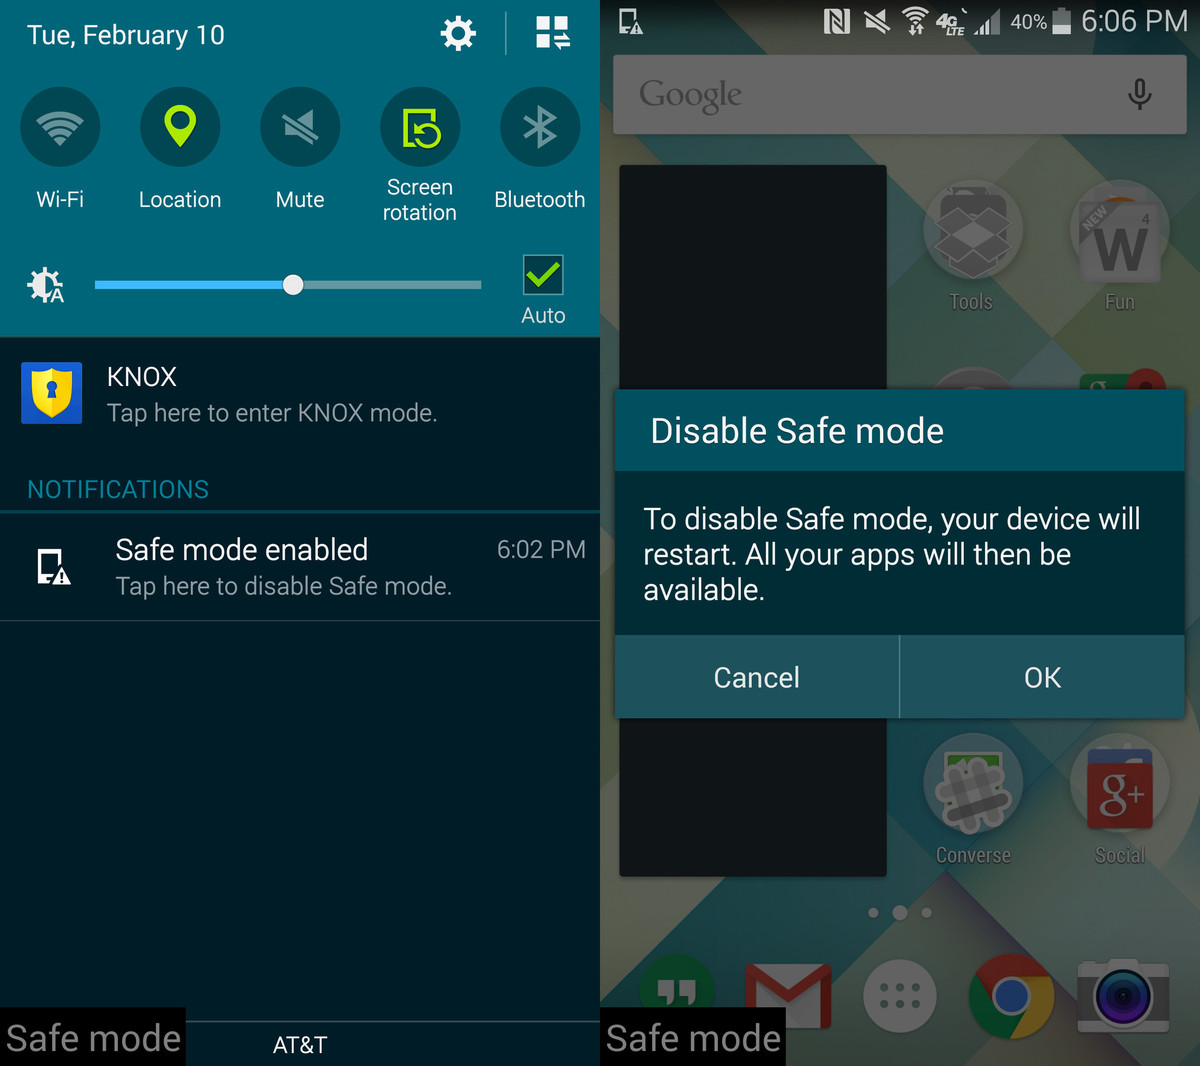 disabling Safe mode in Samsung Galaxy Note 4